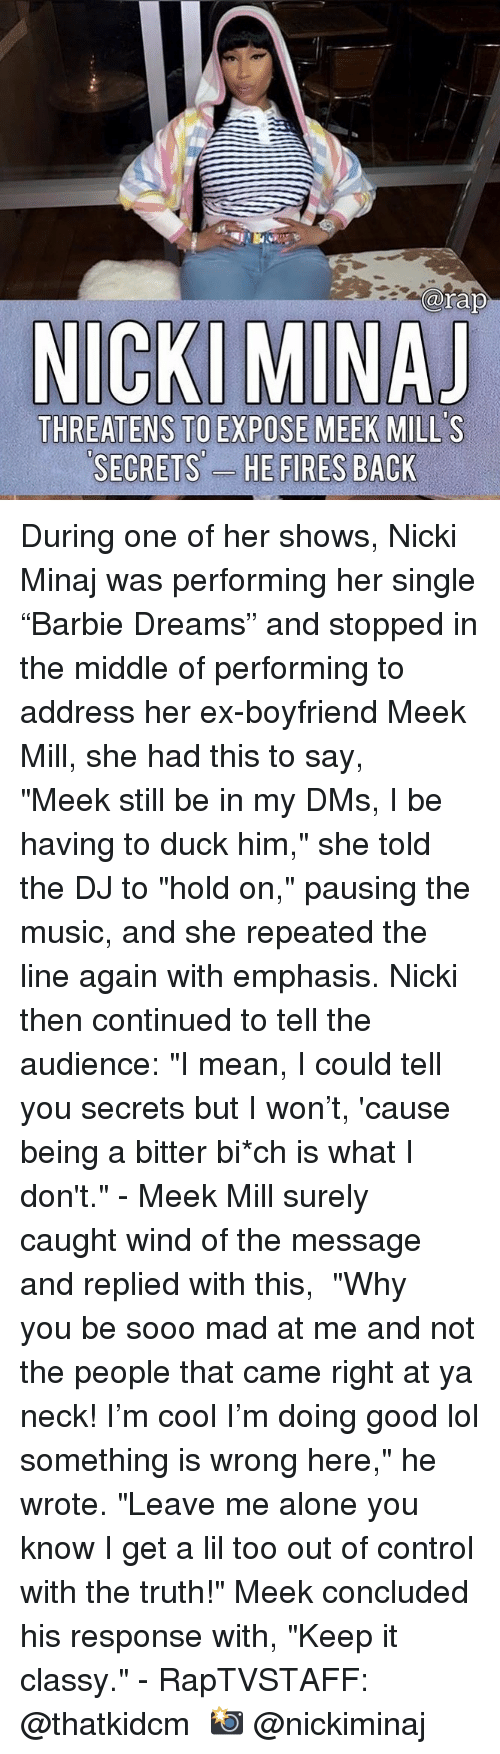 "meek: arap  THREATENS TO EXPOSE MEEK MILL'S  SECRETS'-  ES During one of her shows, Nicki Minaj was performing her single ""Barbie Dreams"" and stopped in the middle of performing to address her ex-boyfriend Meek Mill, she had this to say, ⁣ ⁣ ""Meek still be in my DMs, I be having to duck him,"" she told the DJ to ""hold on,"" pausing the music, and she repeated the line again with emphasis. Nicki then continued to tell the audience: ""I mean, I could tell you secrets but I won't, 'cause being a bitter bi*ch is what I don't.""⁣ -⁣ Meek Mill surely caught wind of the message and replied with this,⁣ ⁣ ""Why you be sooo mad at me and not the people that came right at ya neck! I'm cool I'm doing good lol something is wrong here,"" he wrote. ""Leave me alone you know I get a lil too out of control with the truth!"" Meek concluded his response with, ""Keep it classy.""⁣ -⁣ RapTVSTAFF: @thatkidcm⁣ 📸 @nickiminaj"